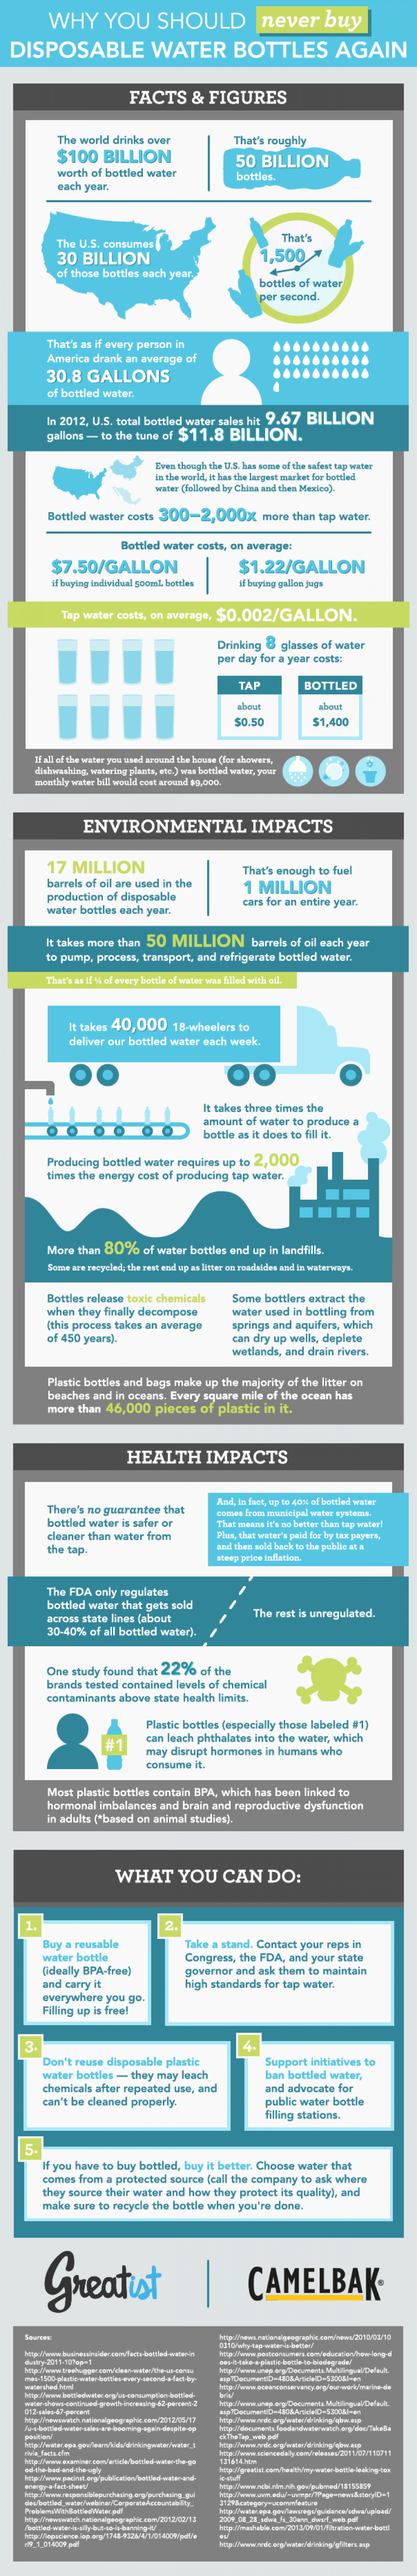 Why You Should Never Buy Disposable Water Bottles Again Infographic